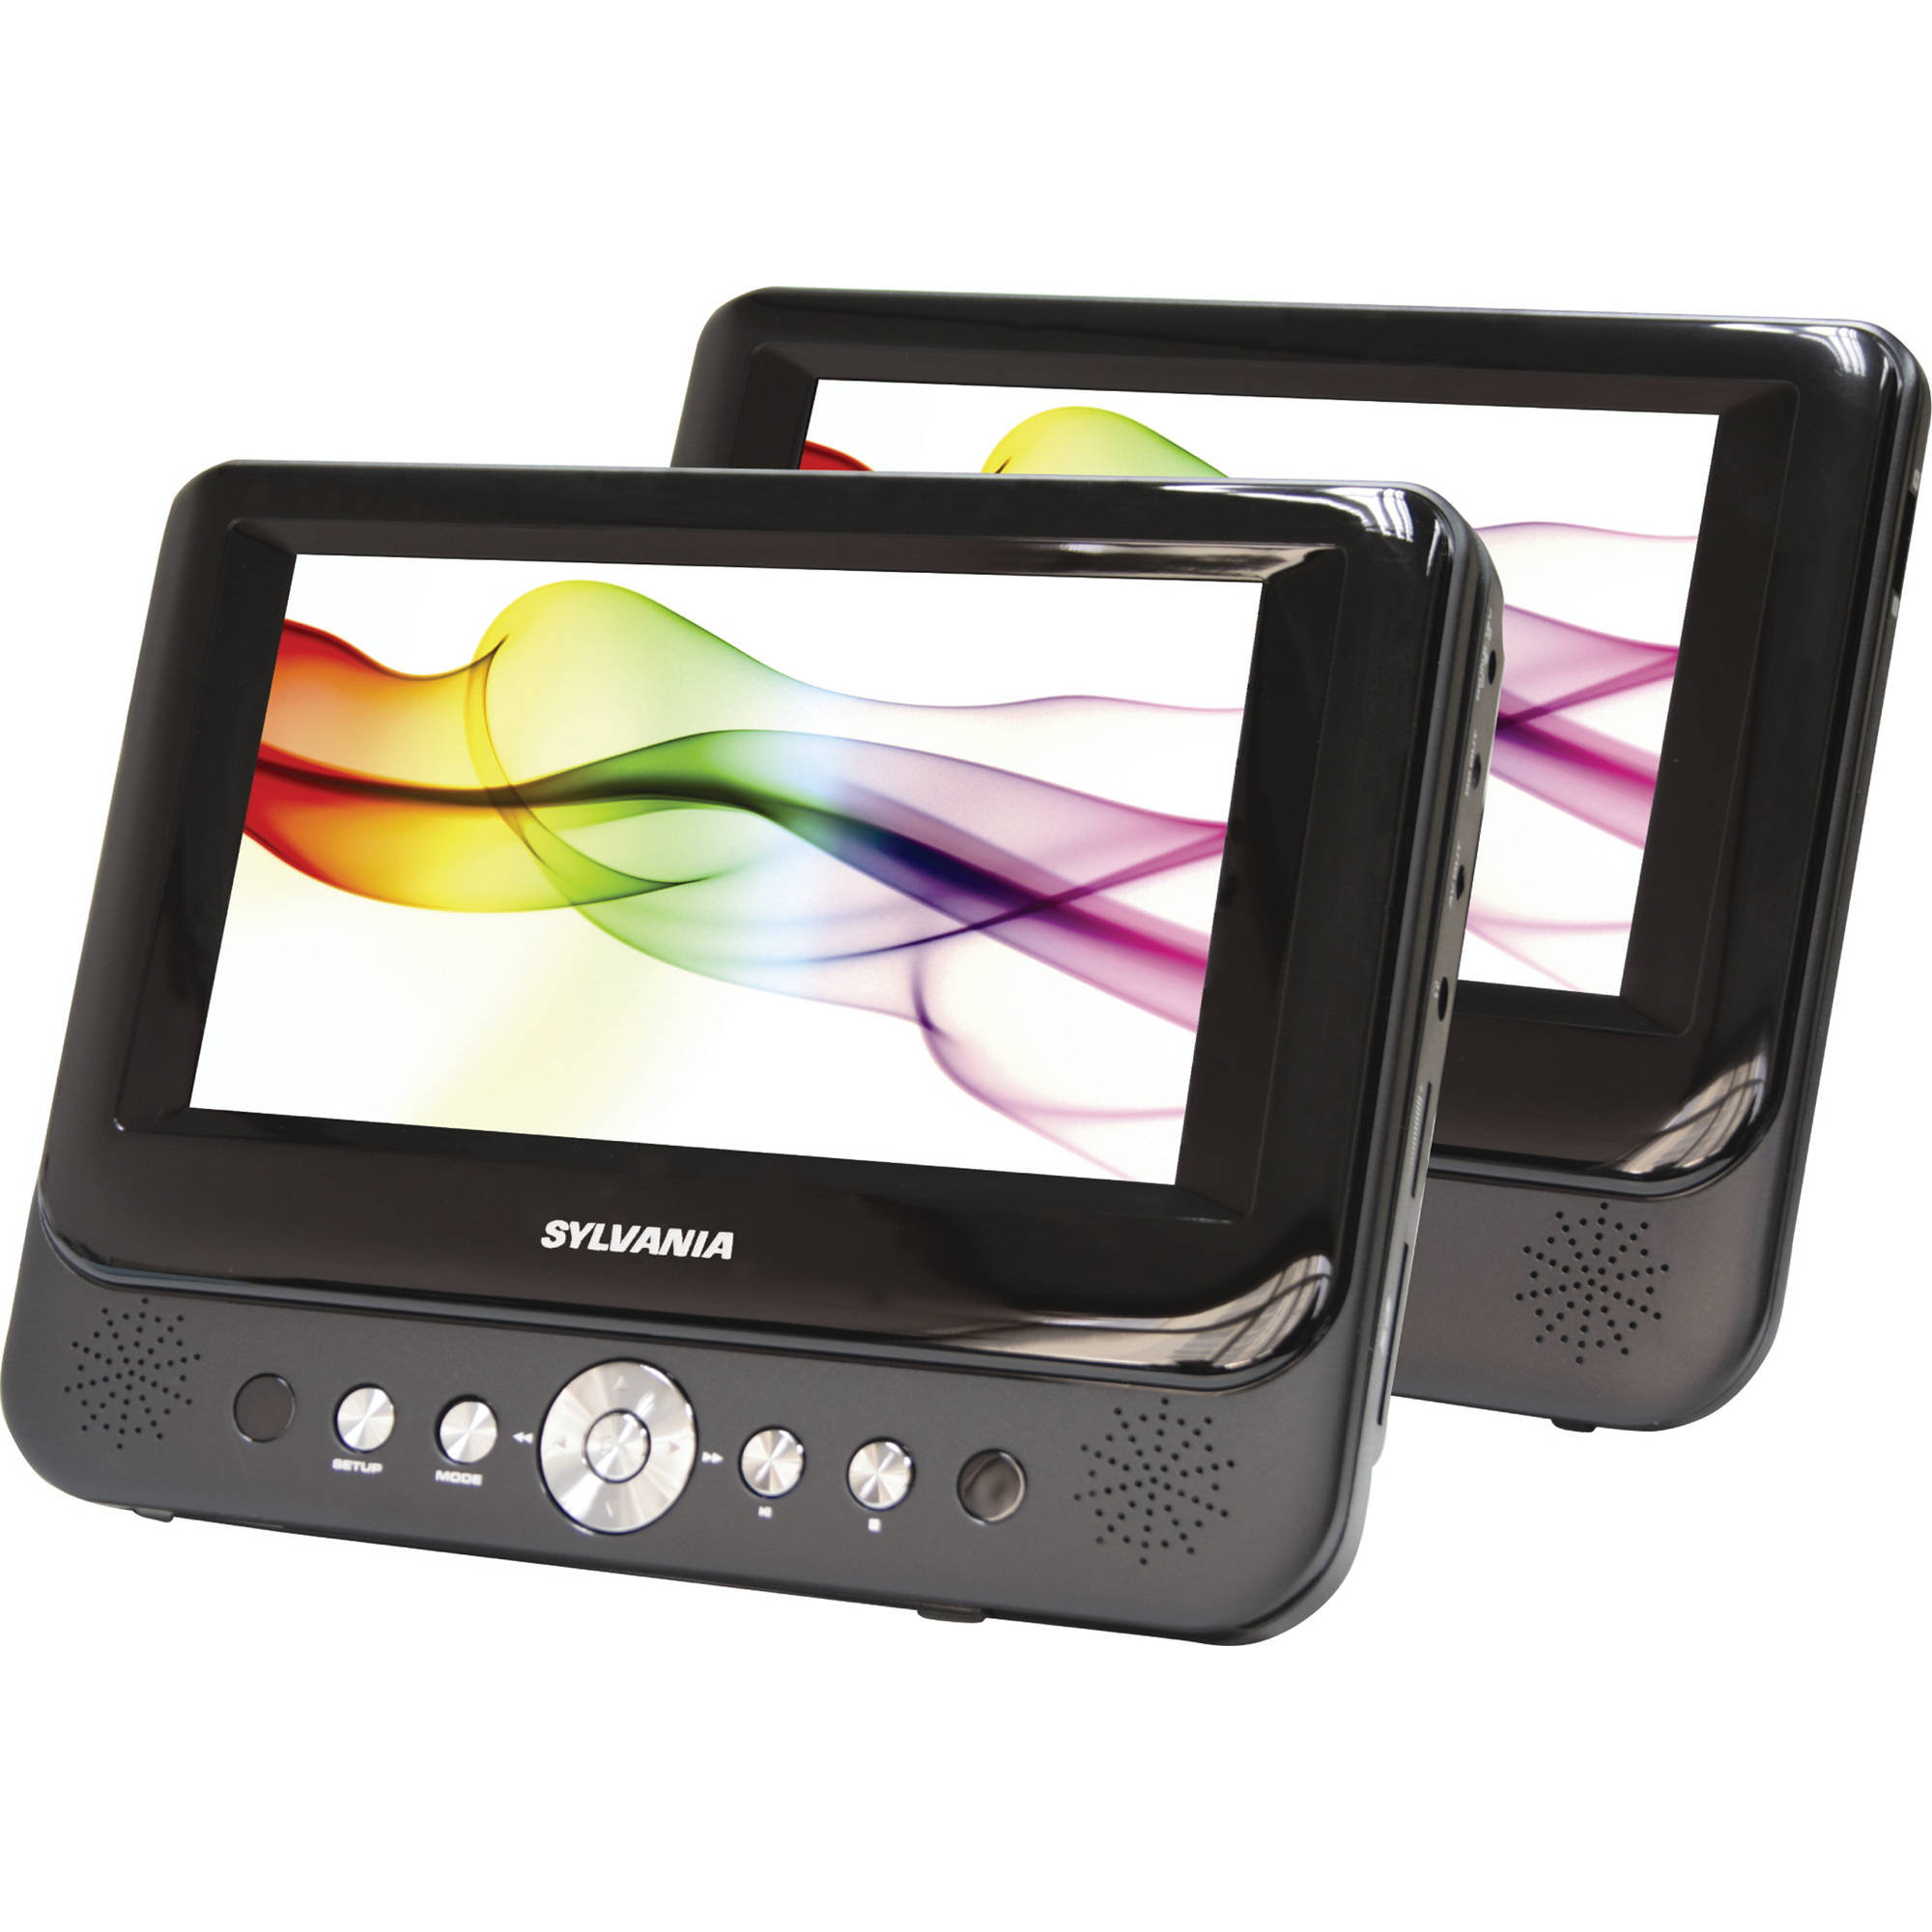 Sylvania Sdvd8737 7 Dual Screen Portable Dvd Sdvd8737a Bh